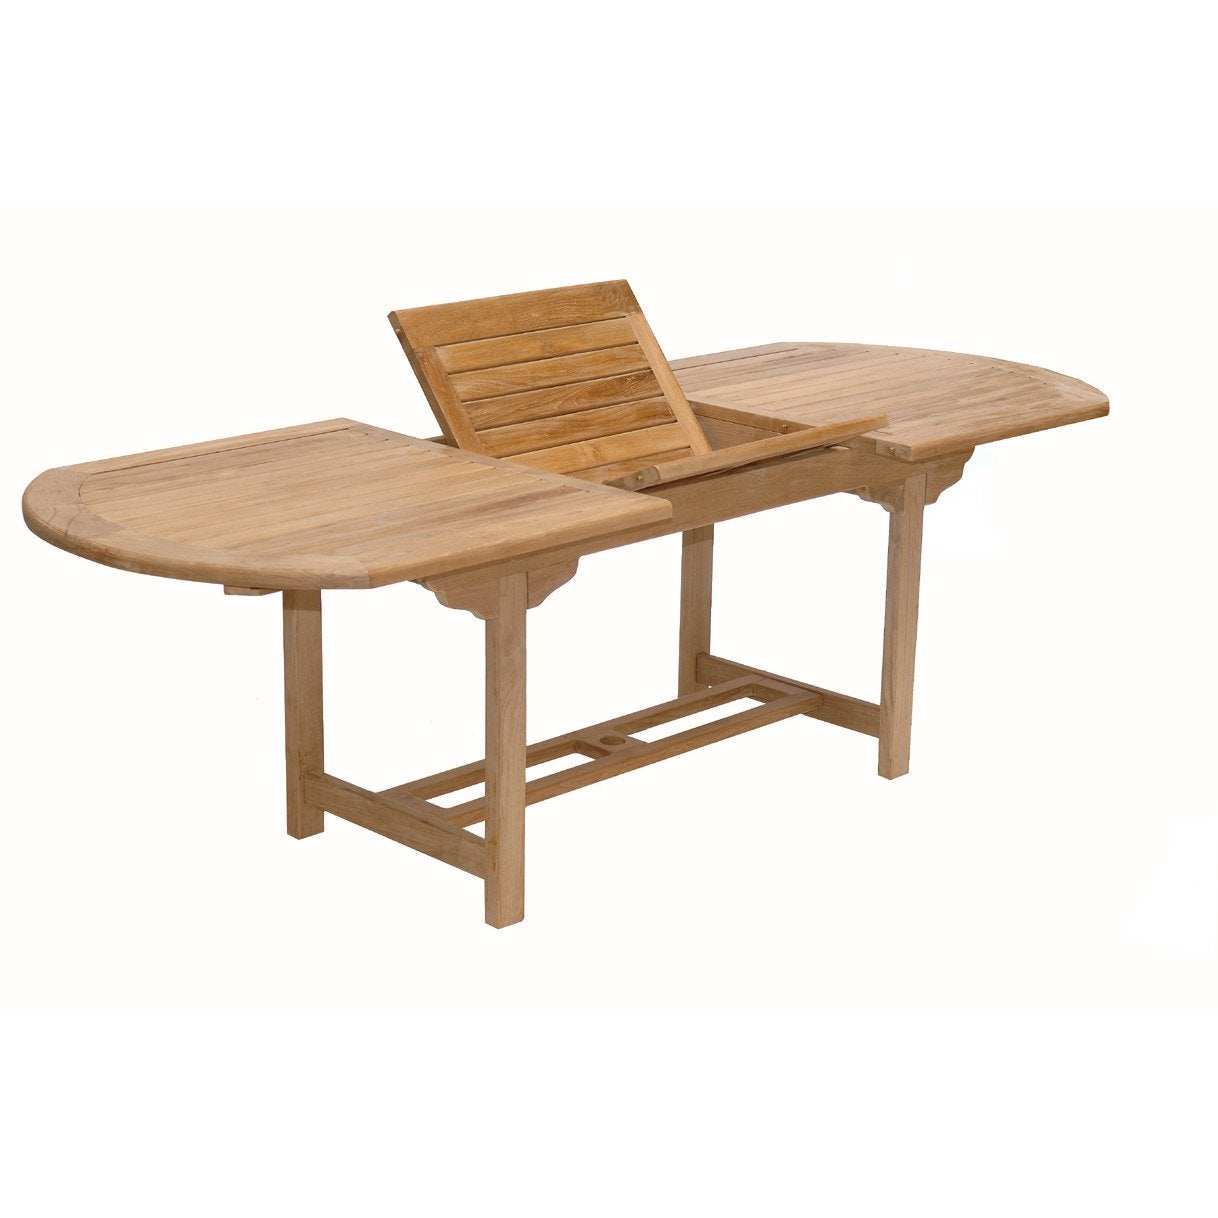 Table de jardin azur ovale naturel 8 personnes leroy merlin for Table de nuit leroy merlin